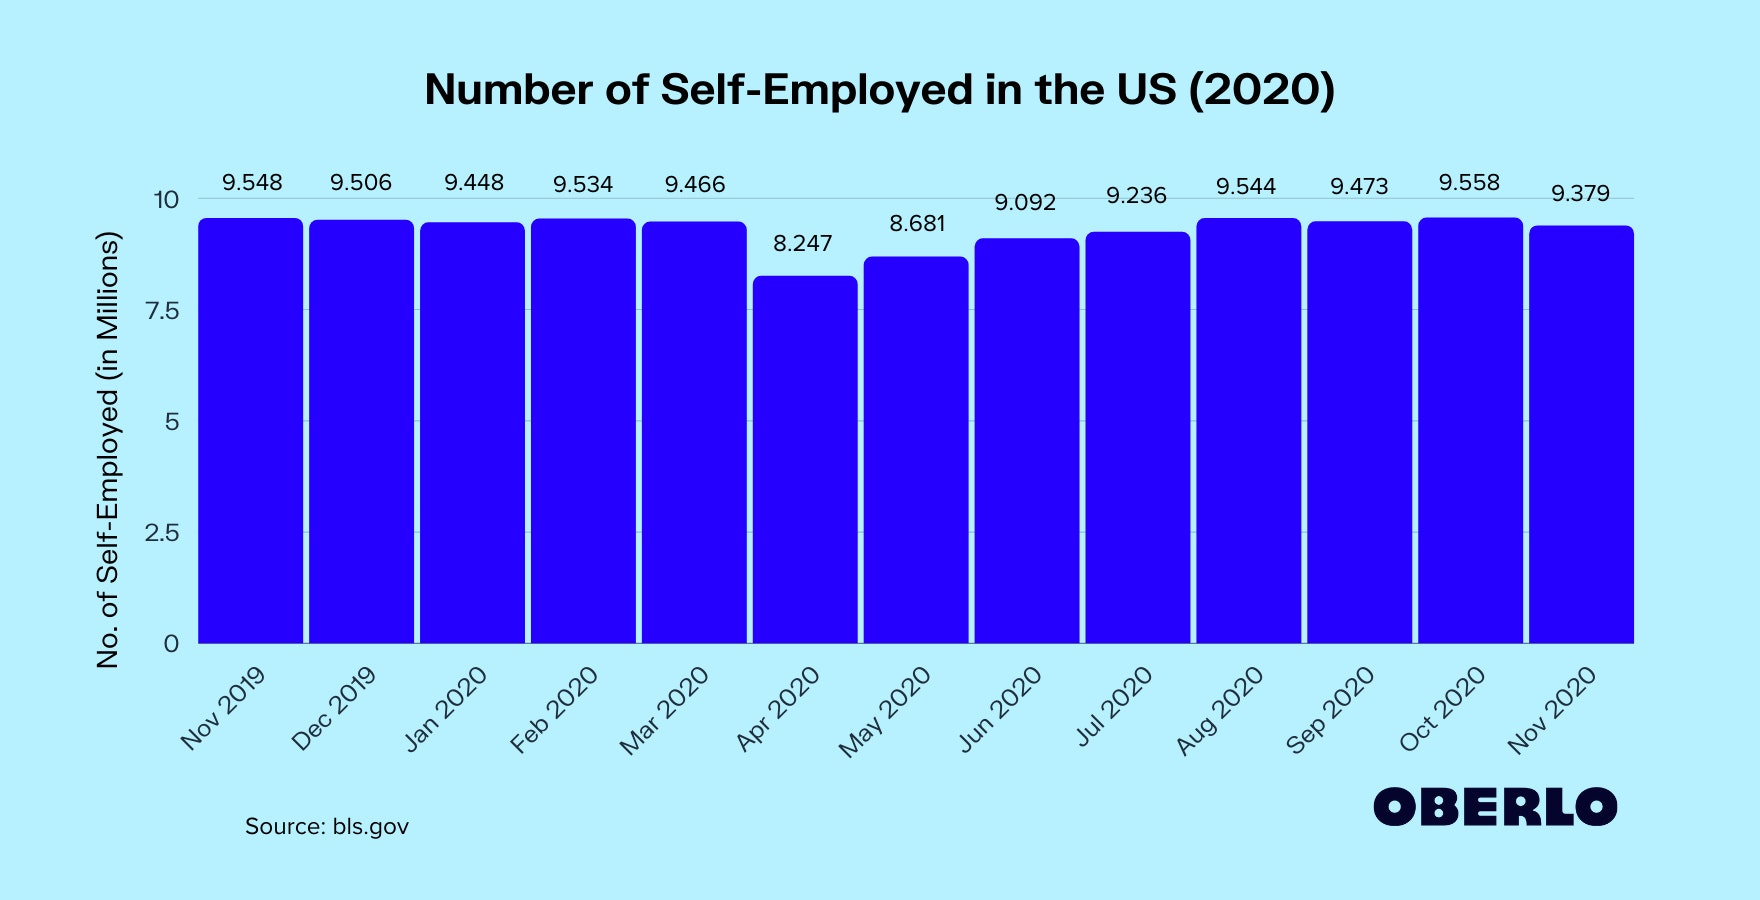 Number of Self-Employed in the US (2020)